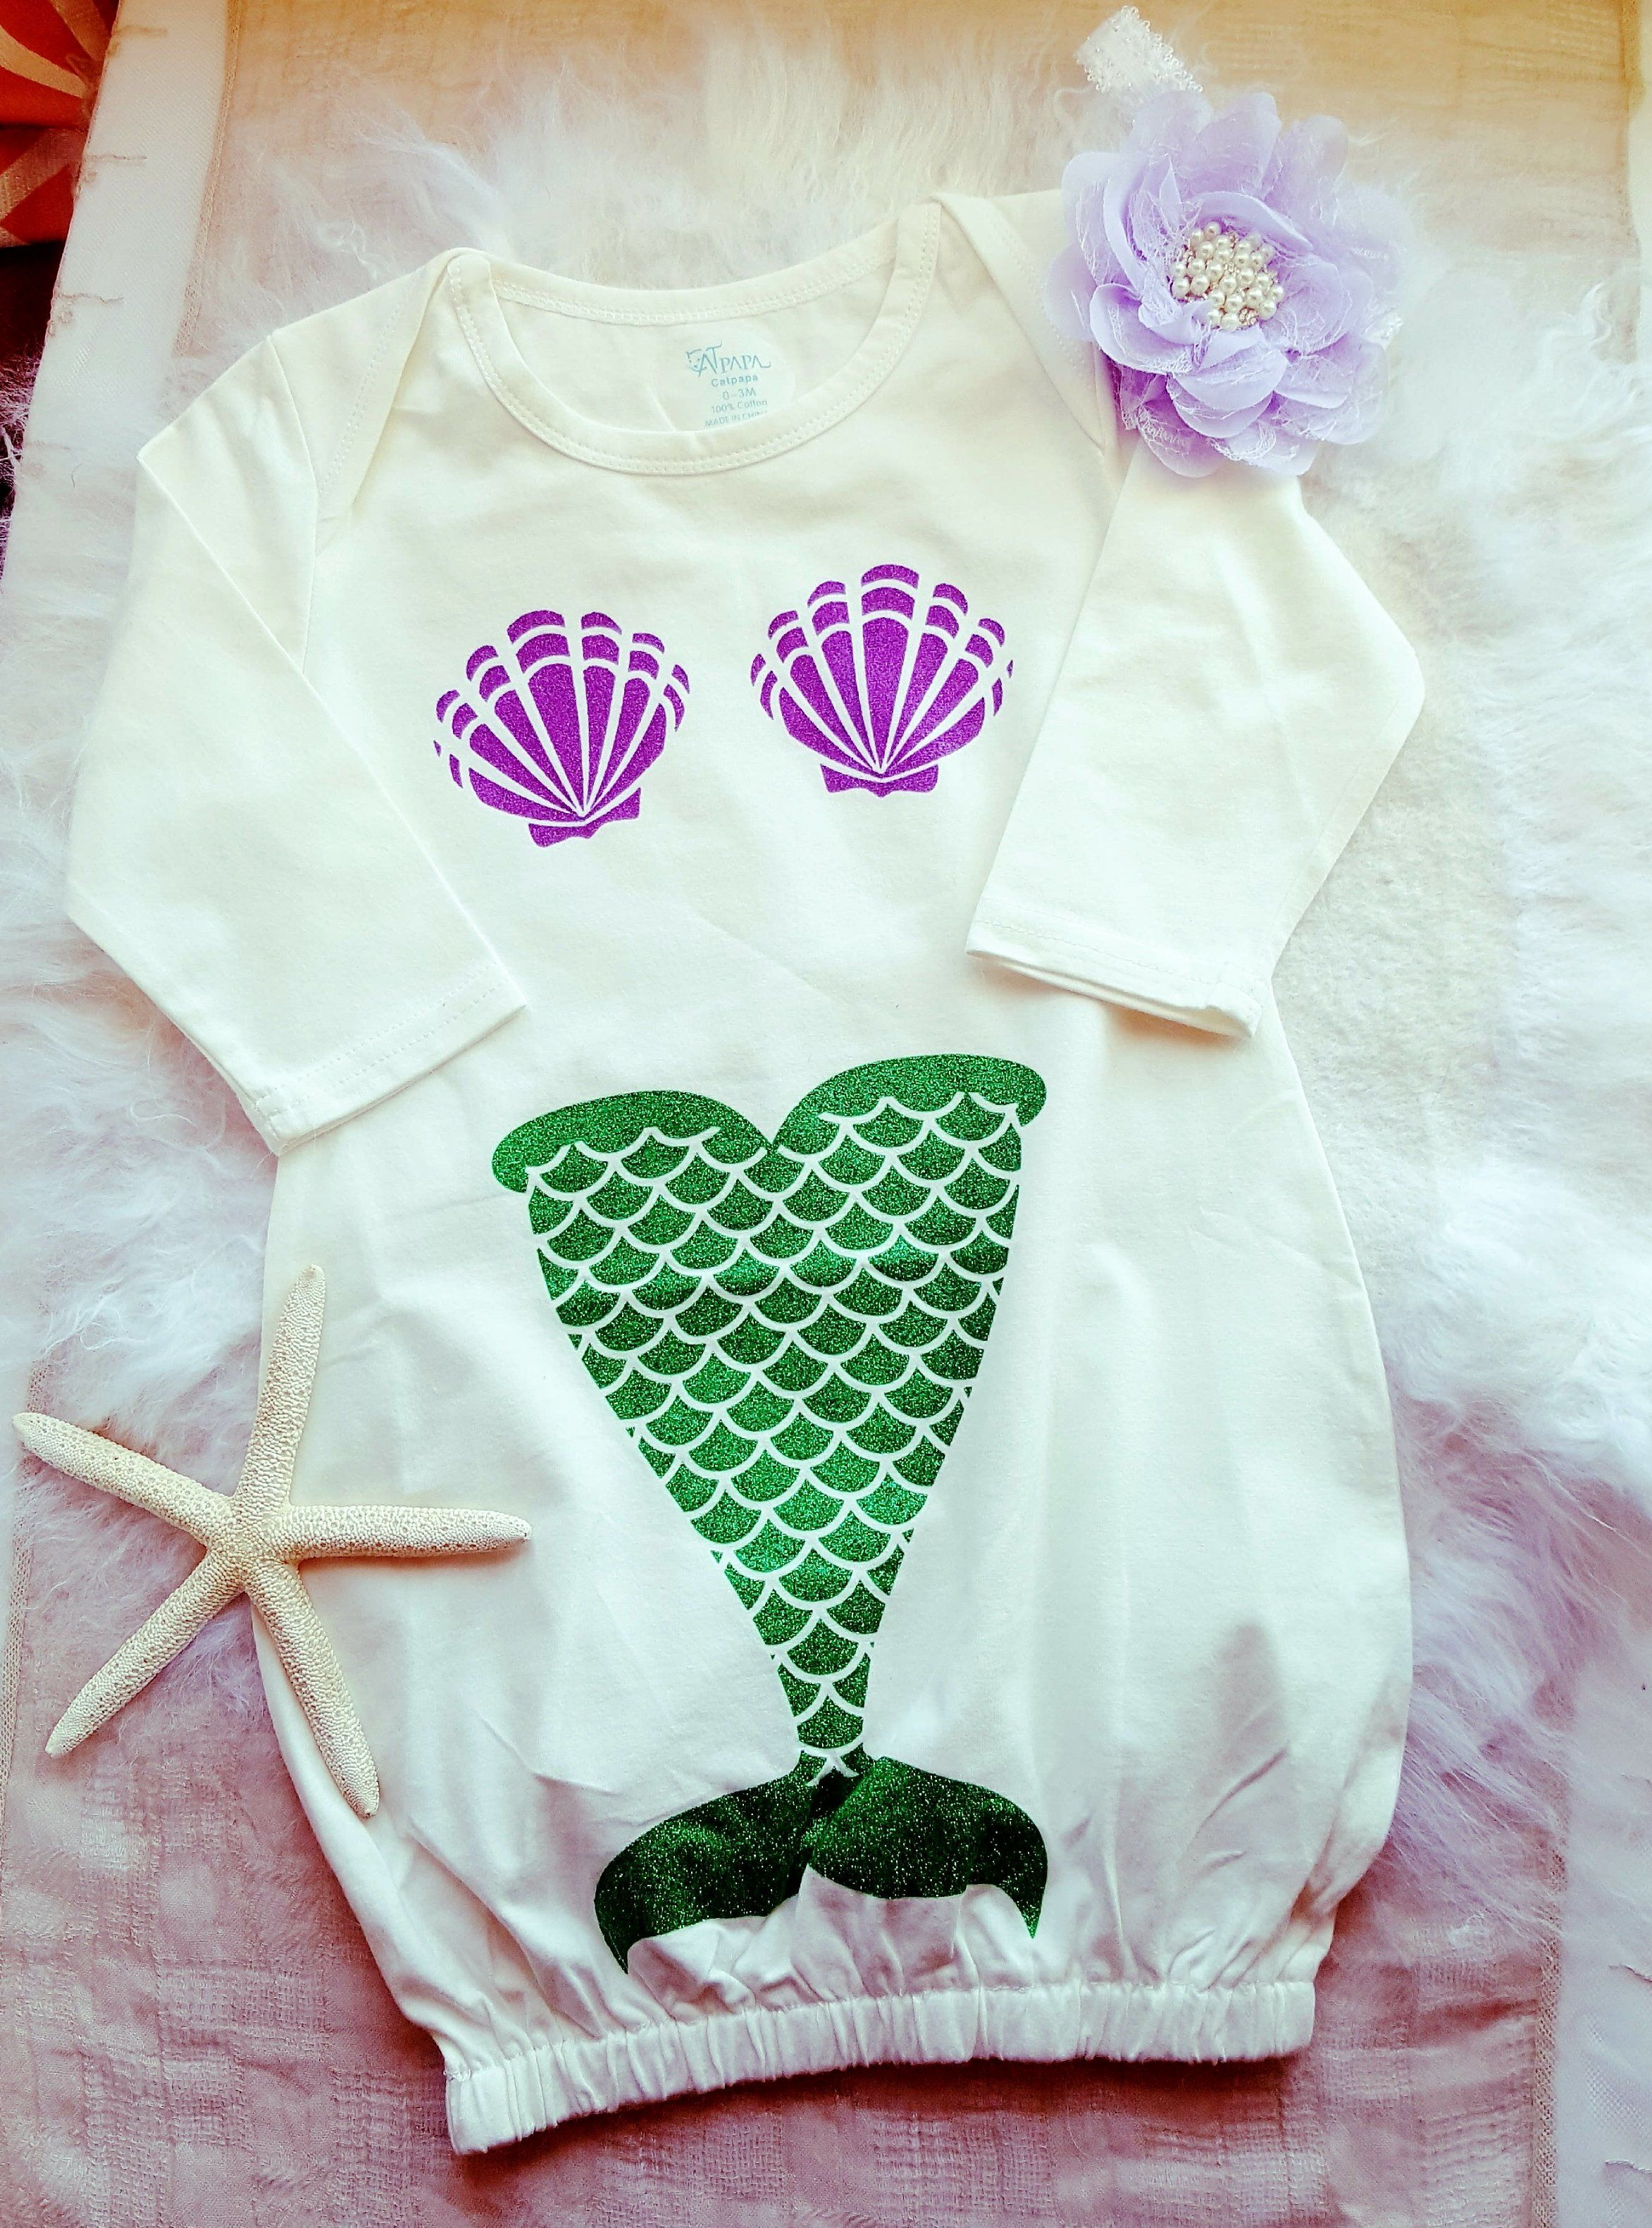 Little Baby Mermaid Sleeping Gown Newborn Size Mermaid s Tale Purple